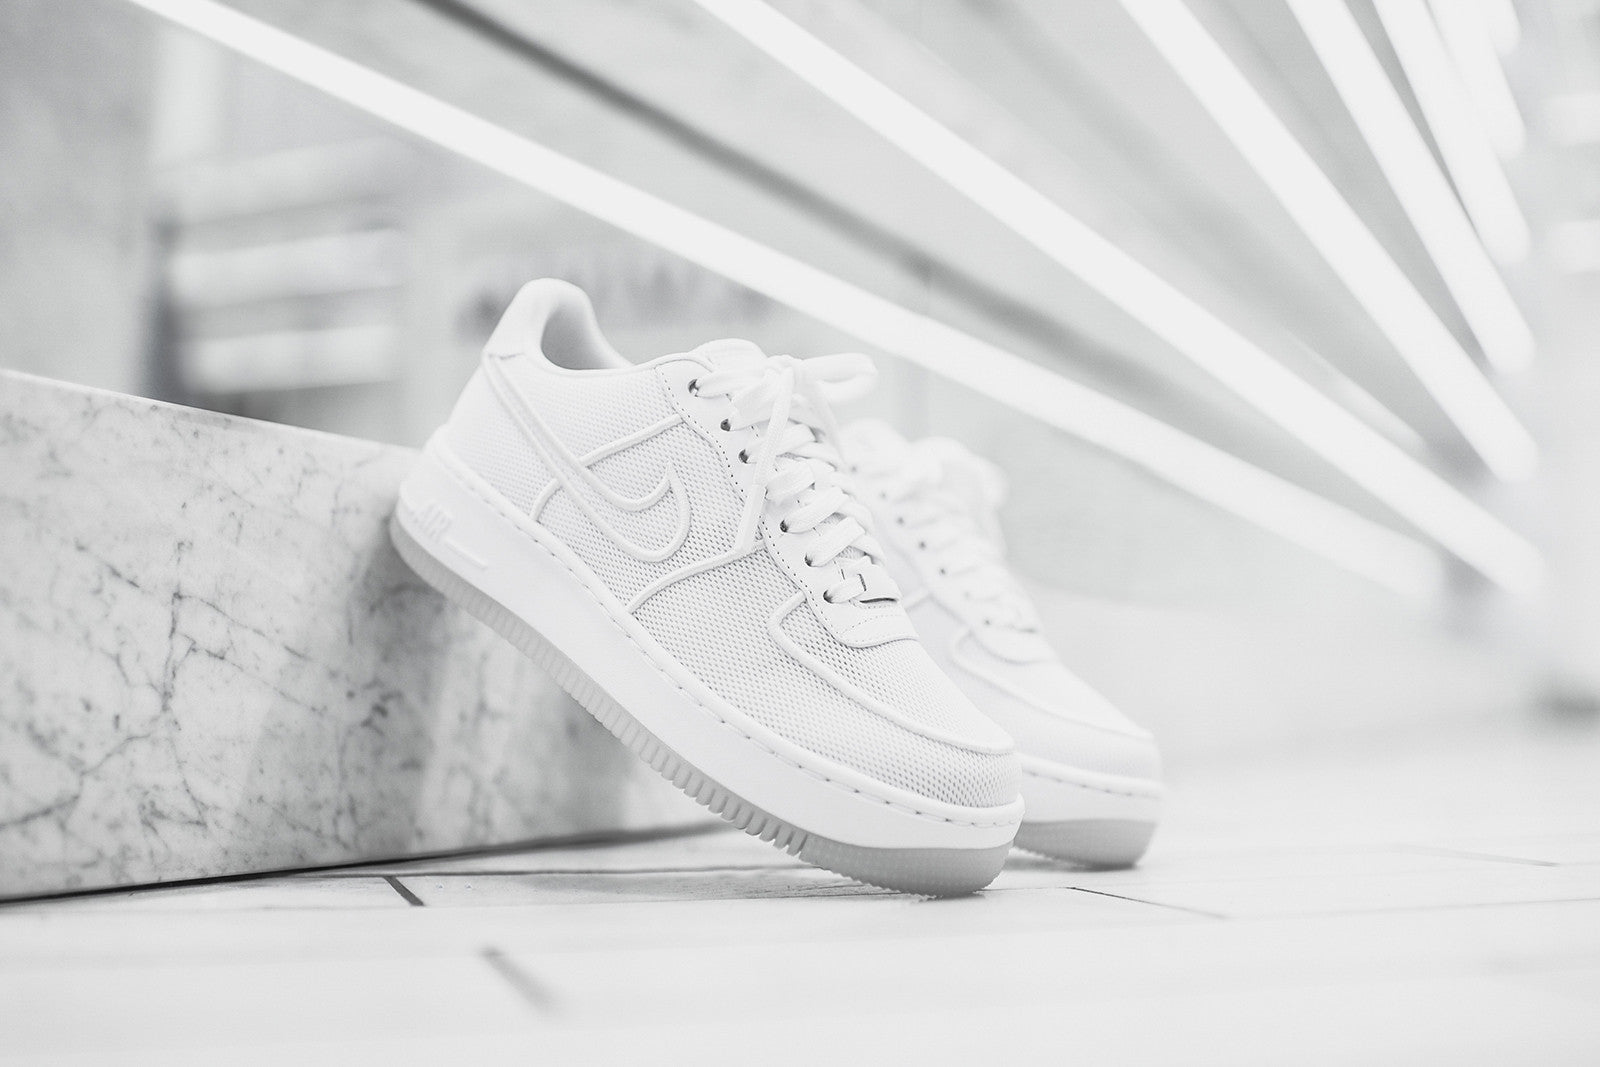 Nike Air Force 1 AF1 Low Upstep BR White Sneakers Shoes